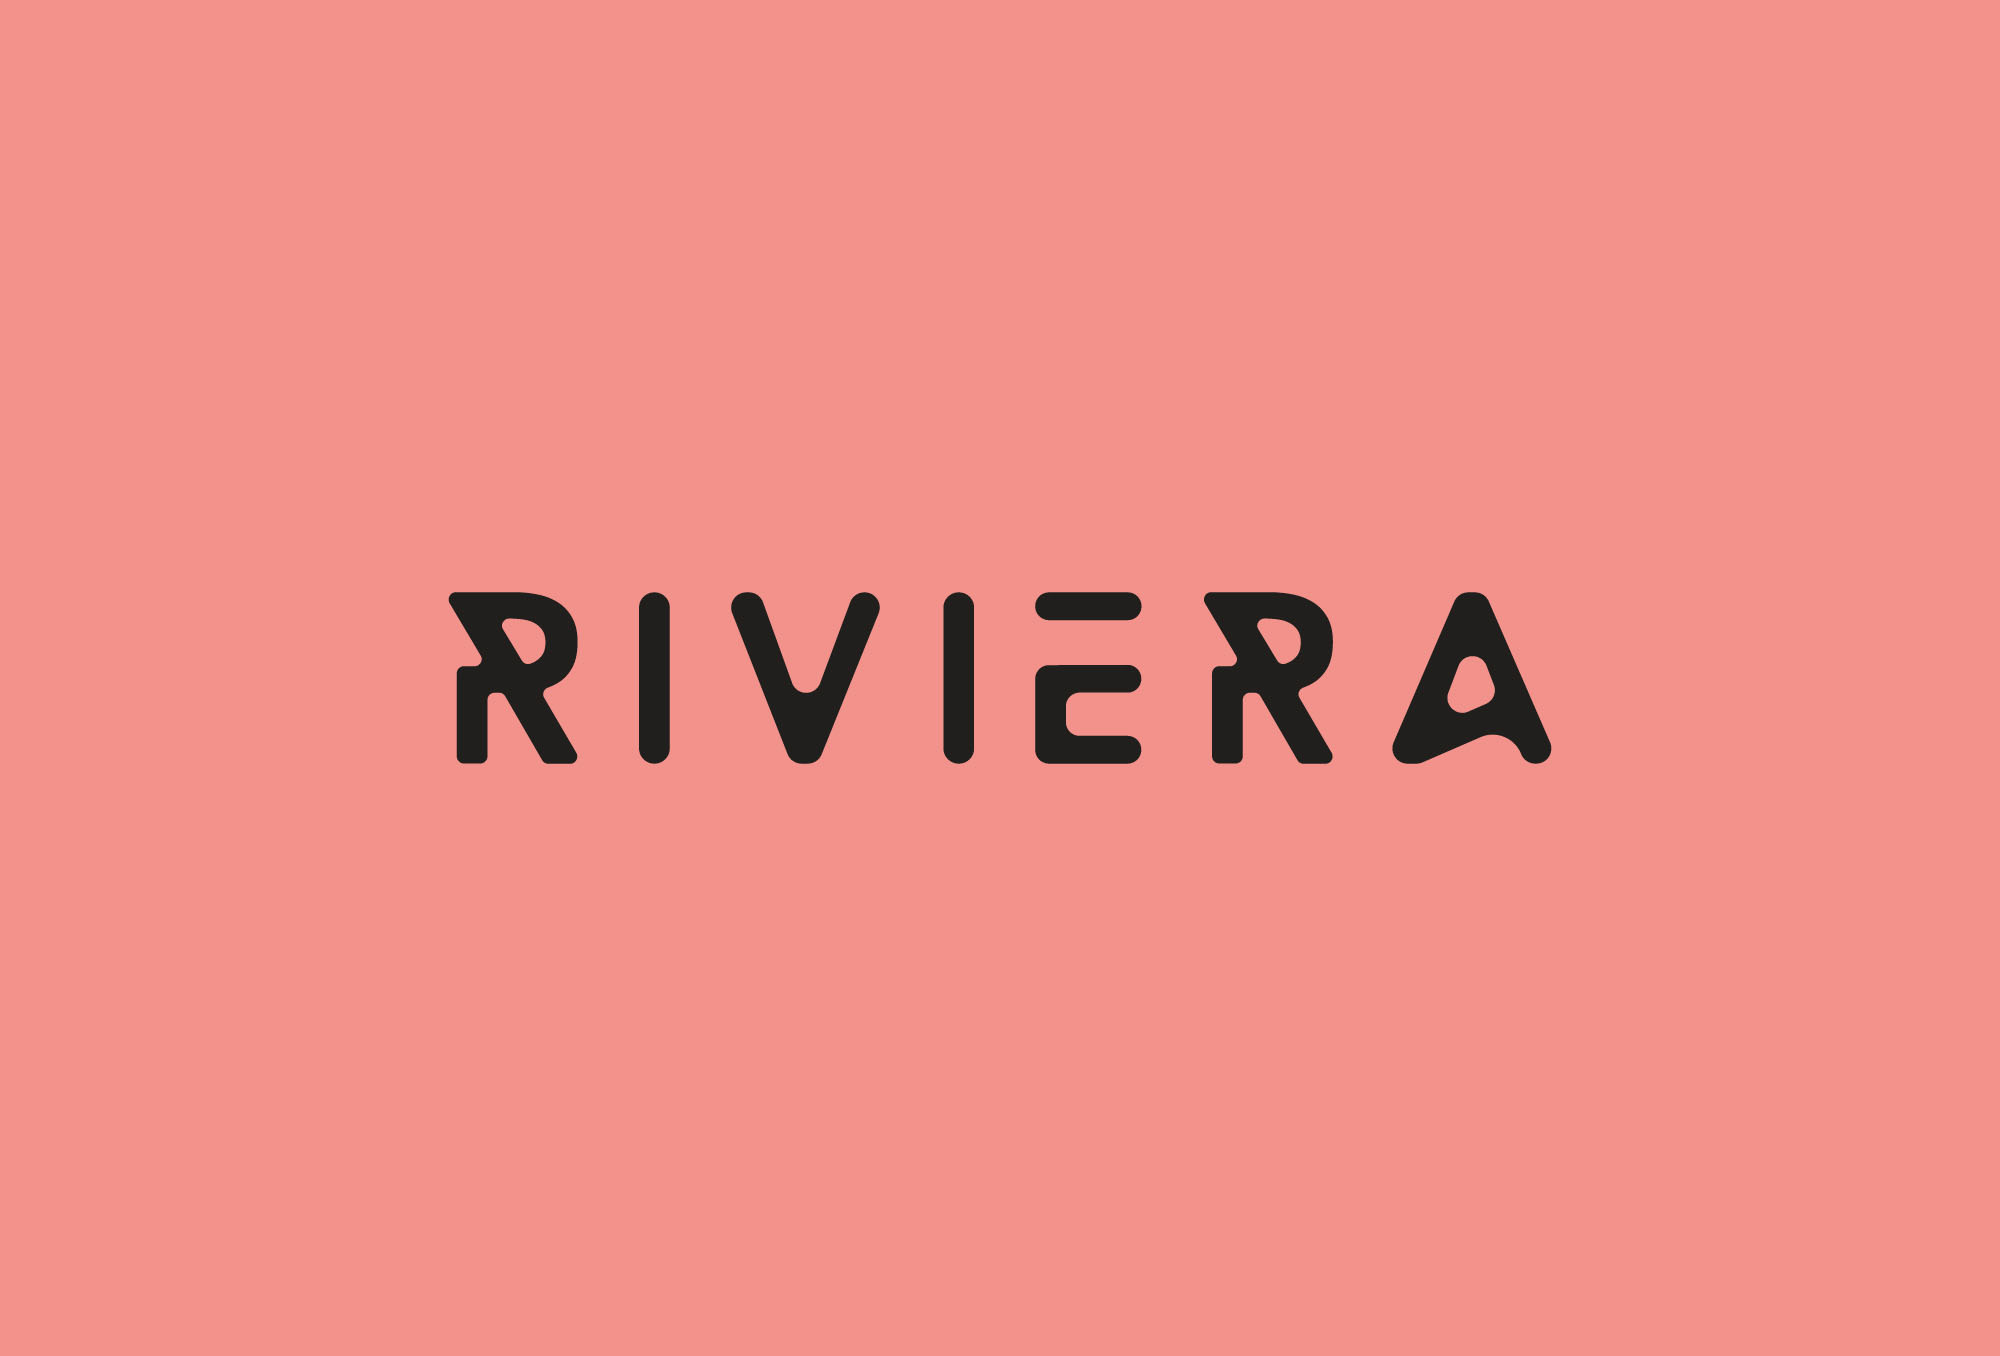 Riviera Display Uppercase Typeface